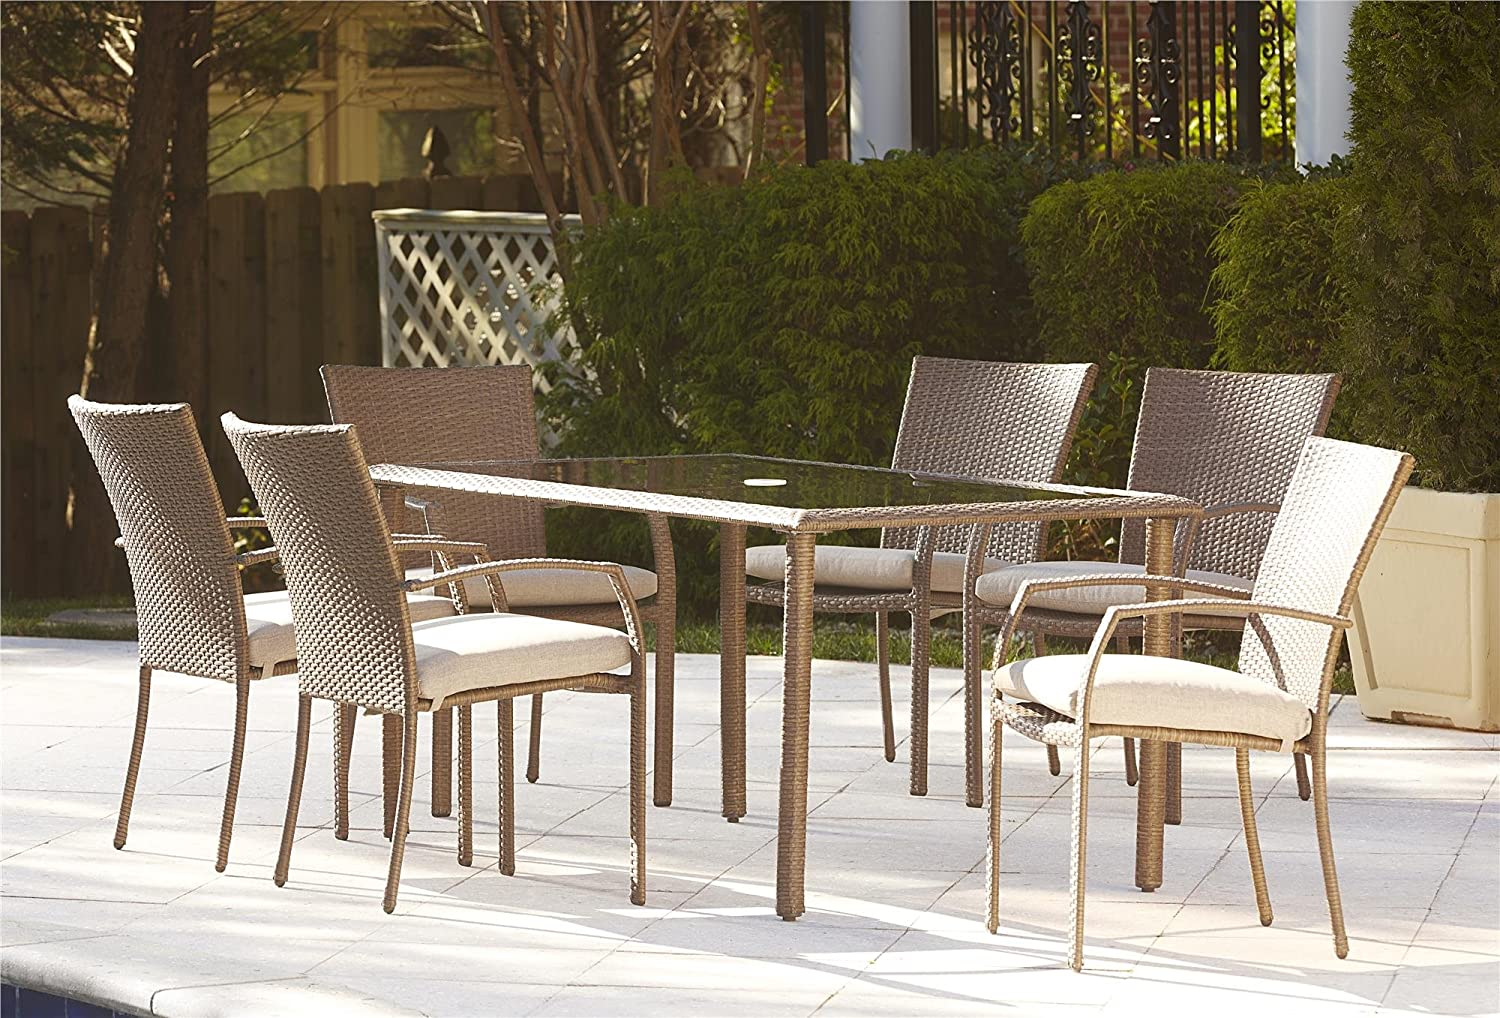 tables table set patio dining hack outdoor ikea furniture